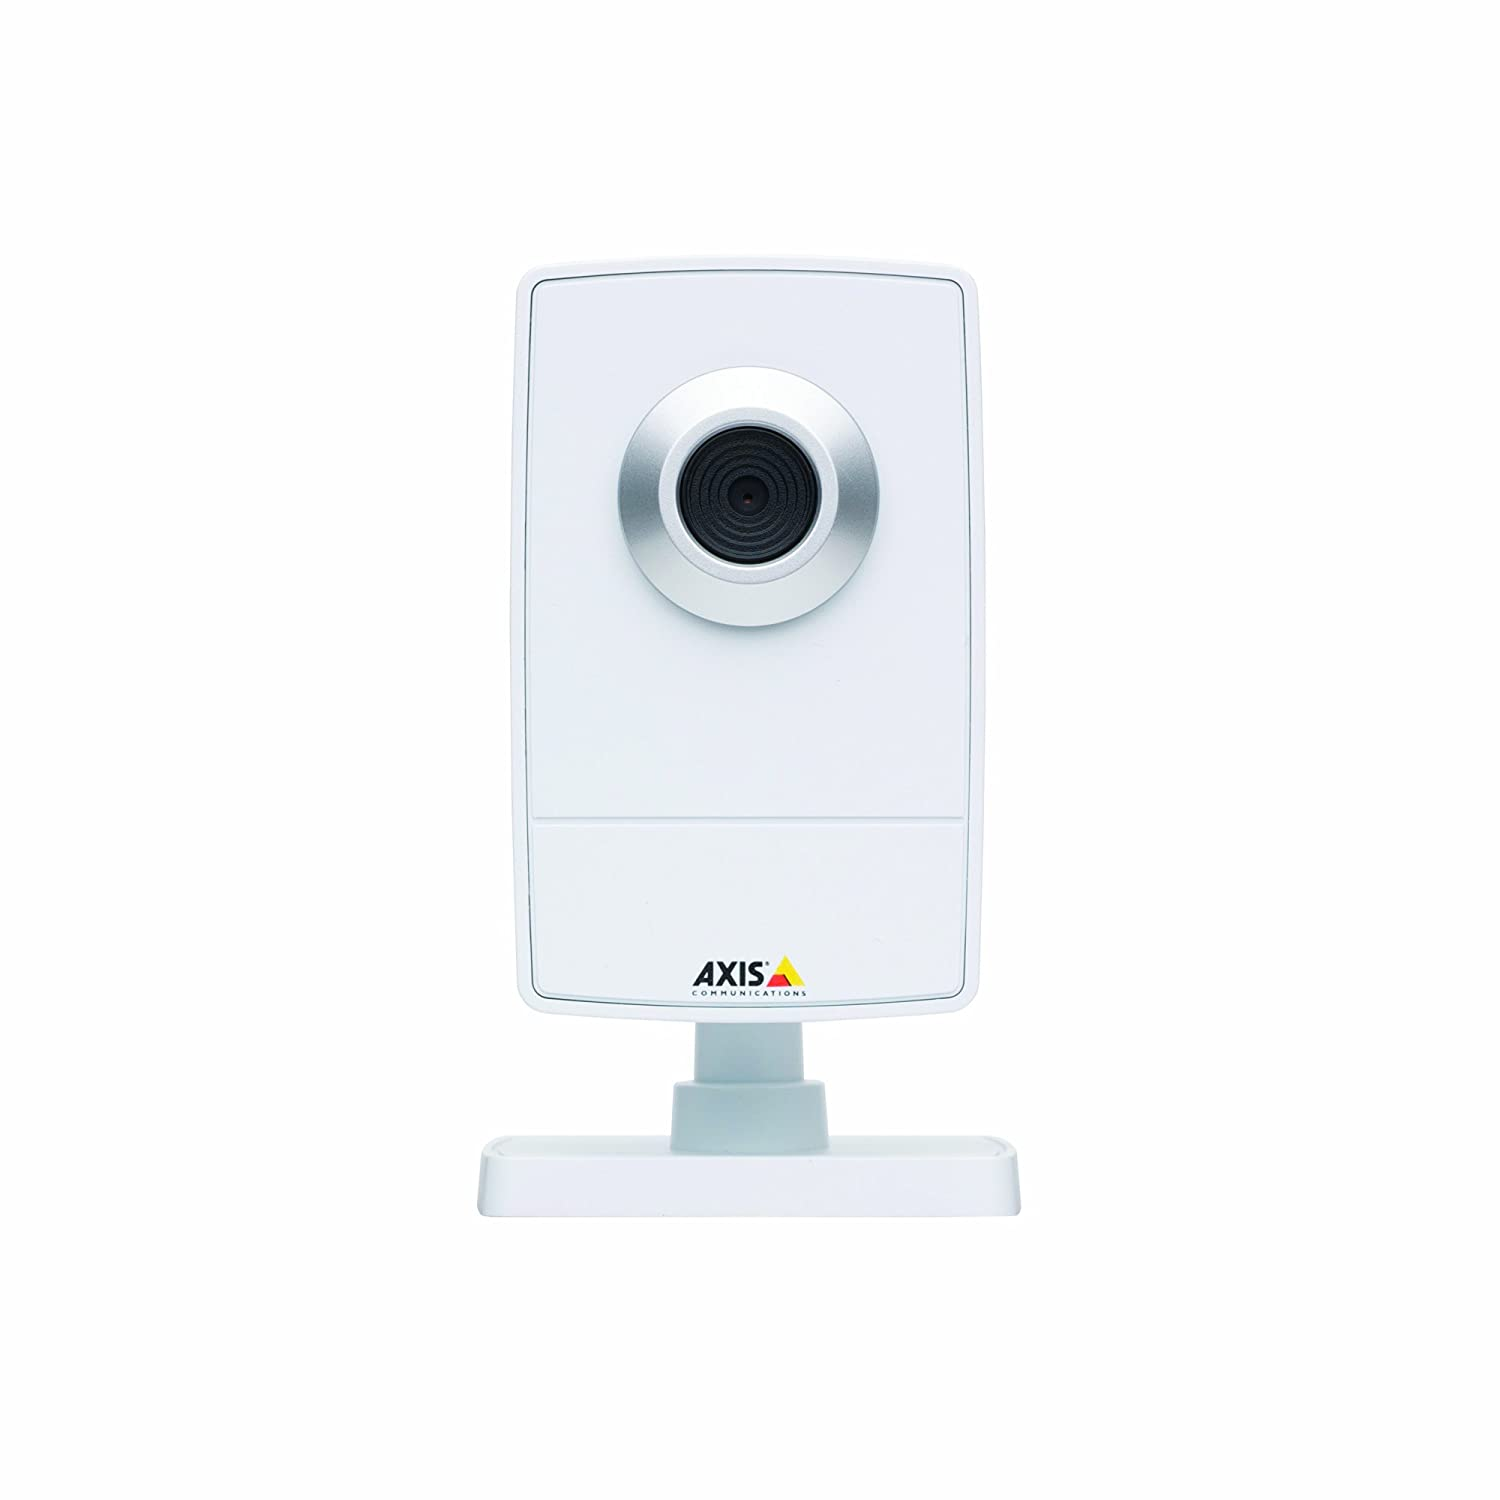 AXIS M1011 NETWORK CAMERA WINDOWS VISTA DRIVER DOWNLOAD